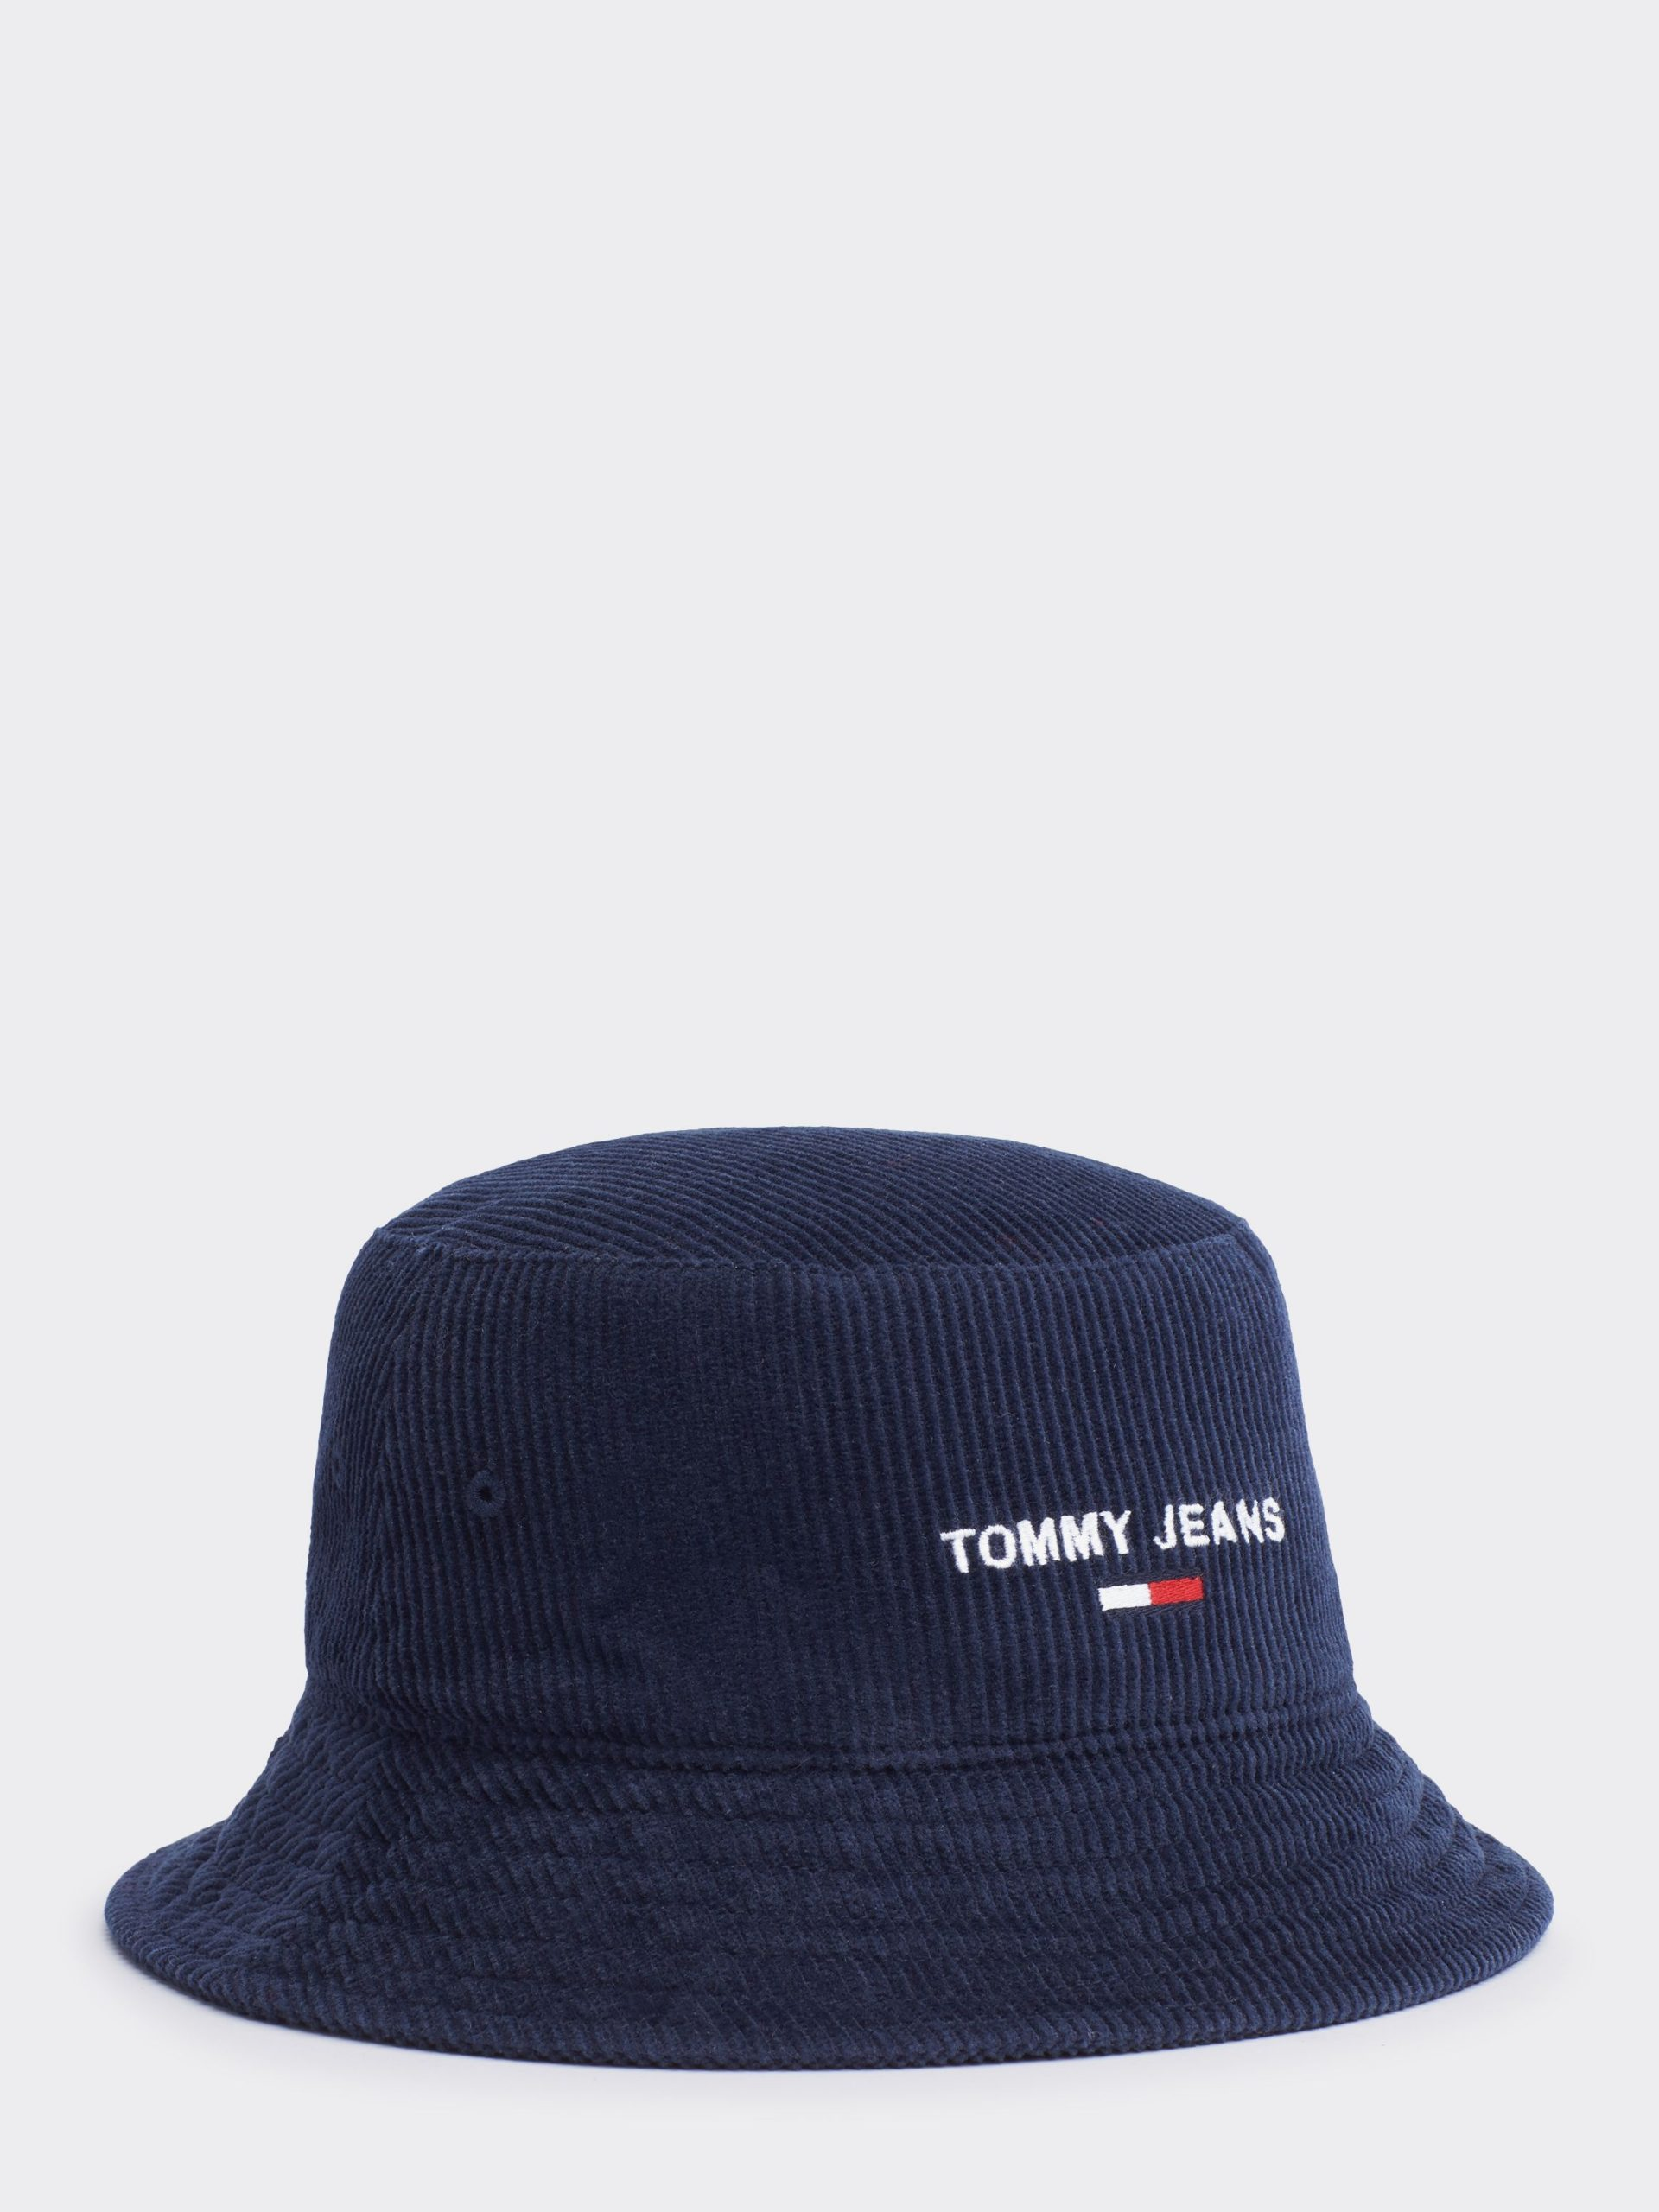 Gift ideas for teens - tommy bucket hat